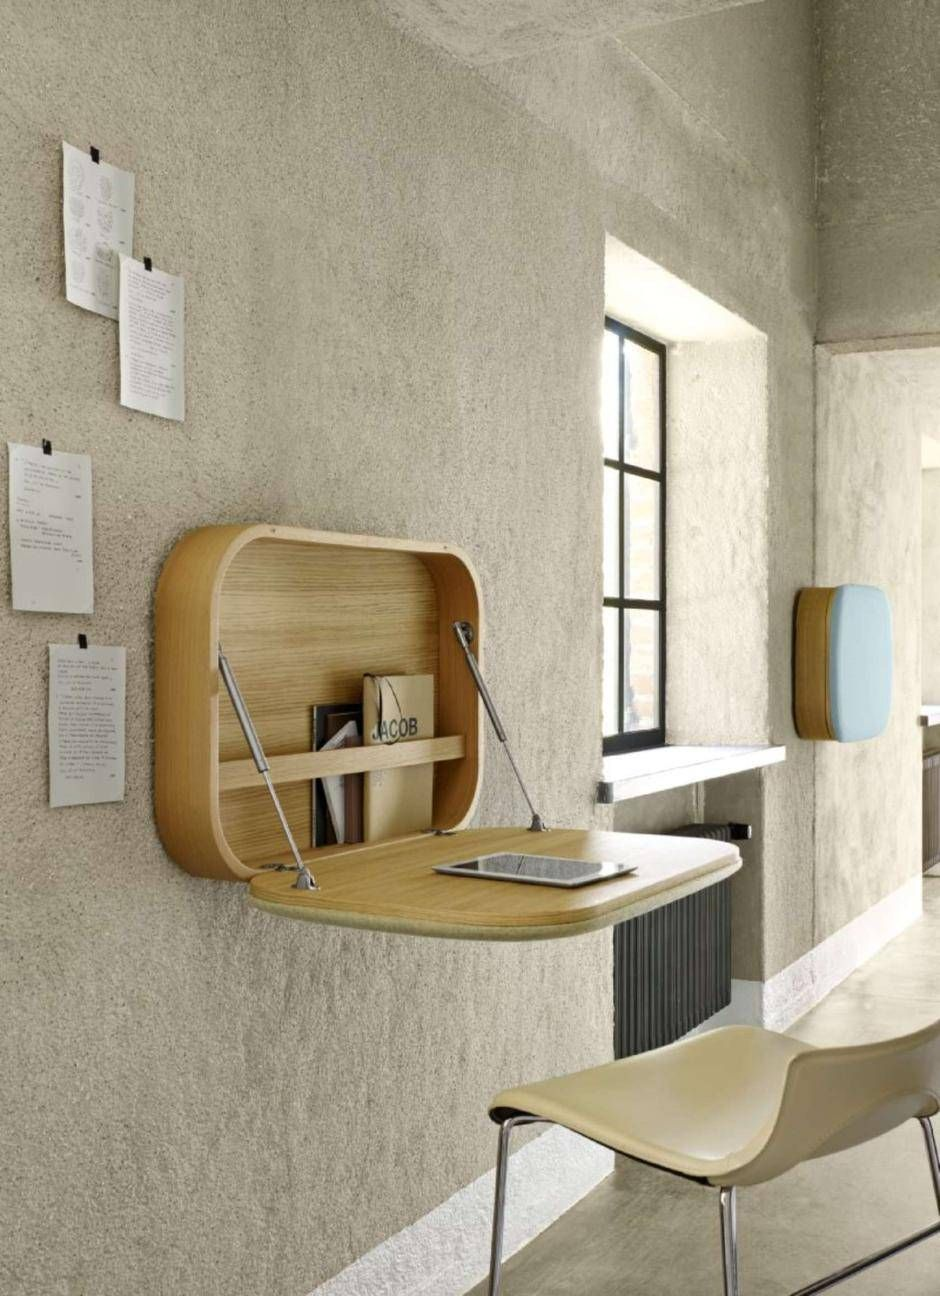 Wall Mounted Desks For Small Spaces Pin By Carol Stott Phd On Officious Furniture Wall Mounted Desk